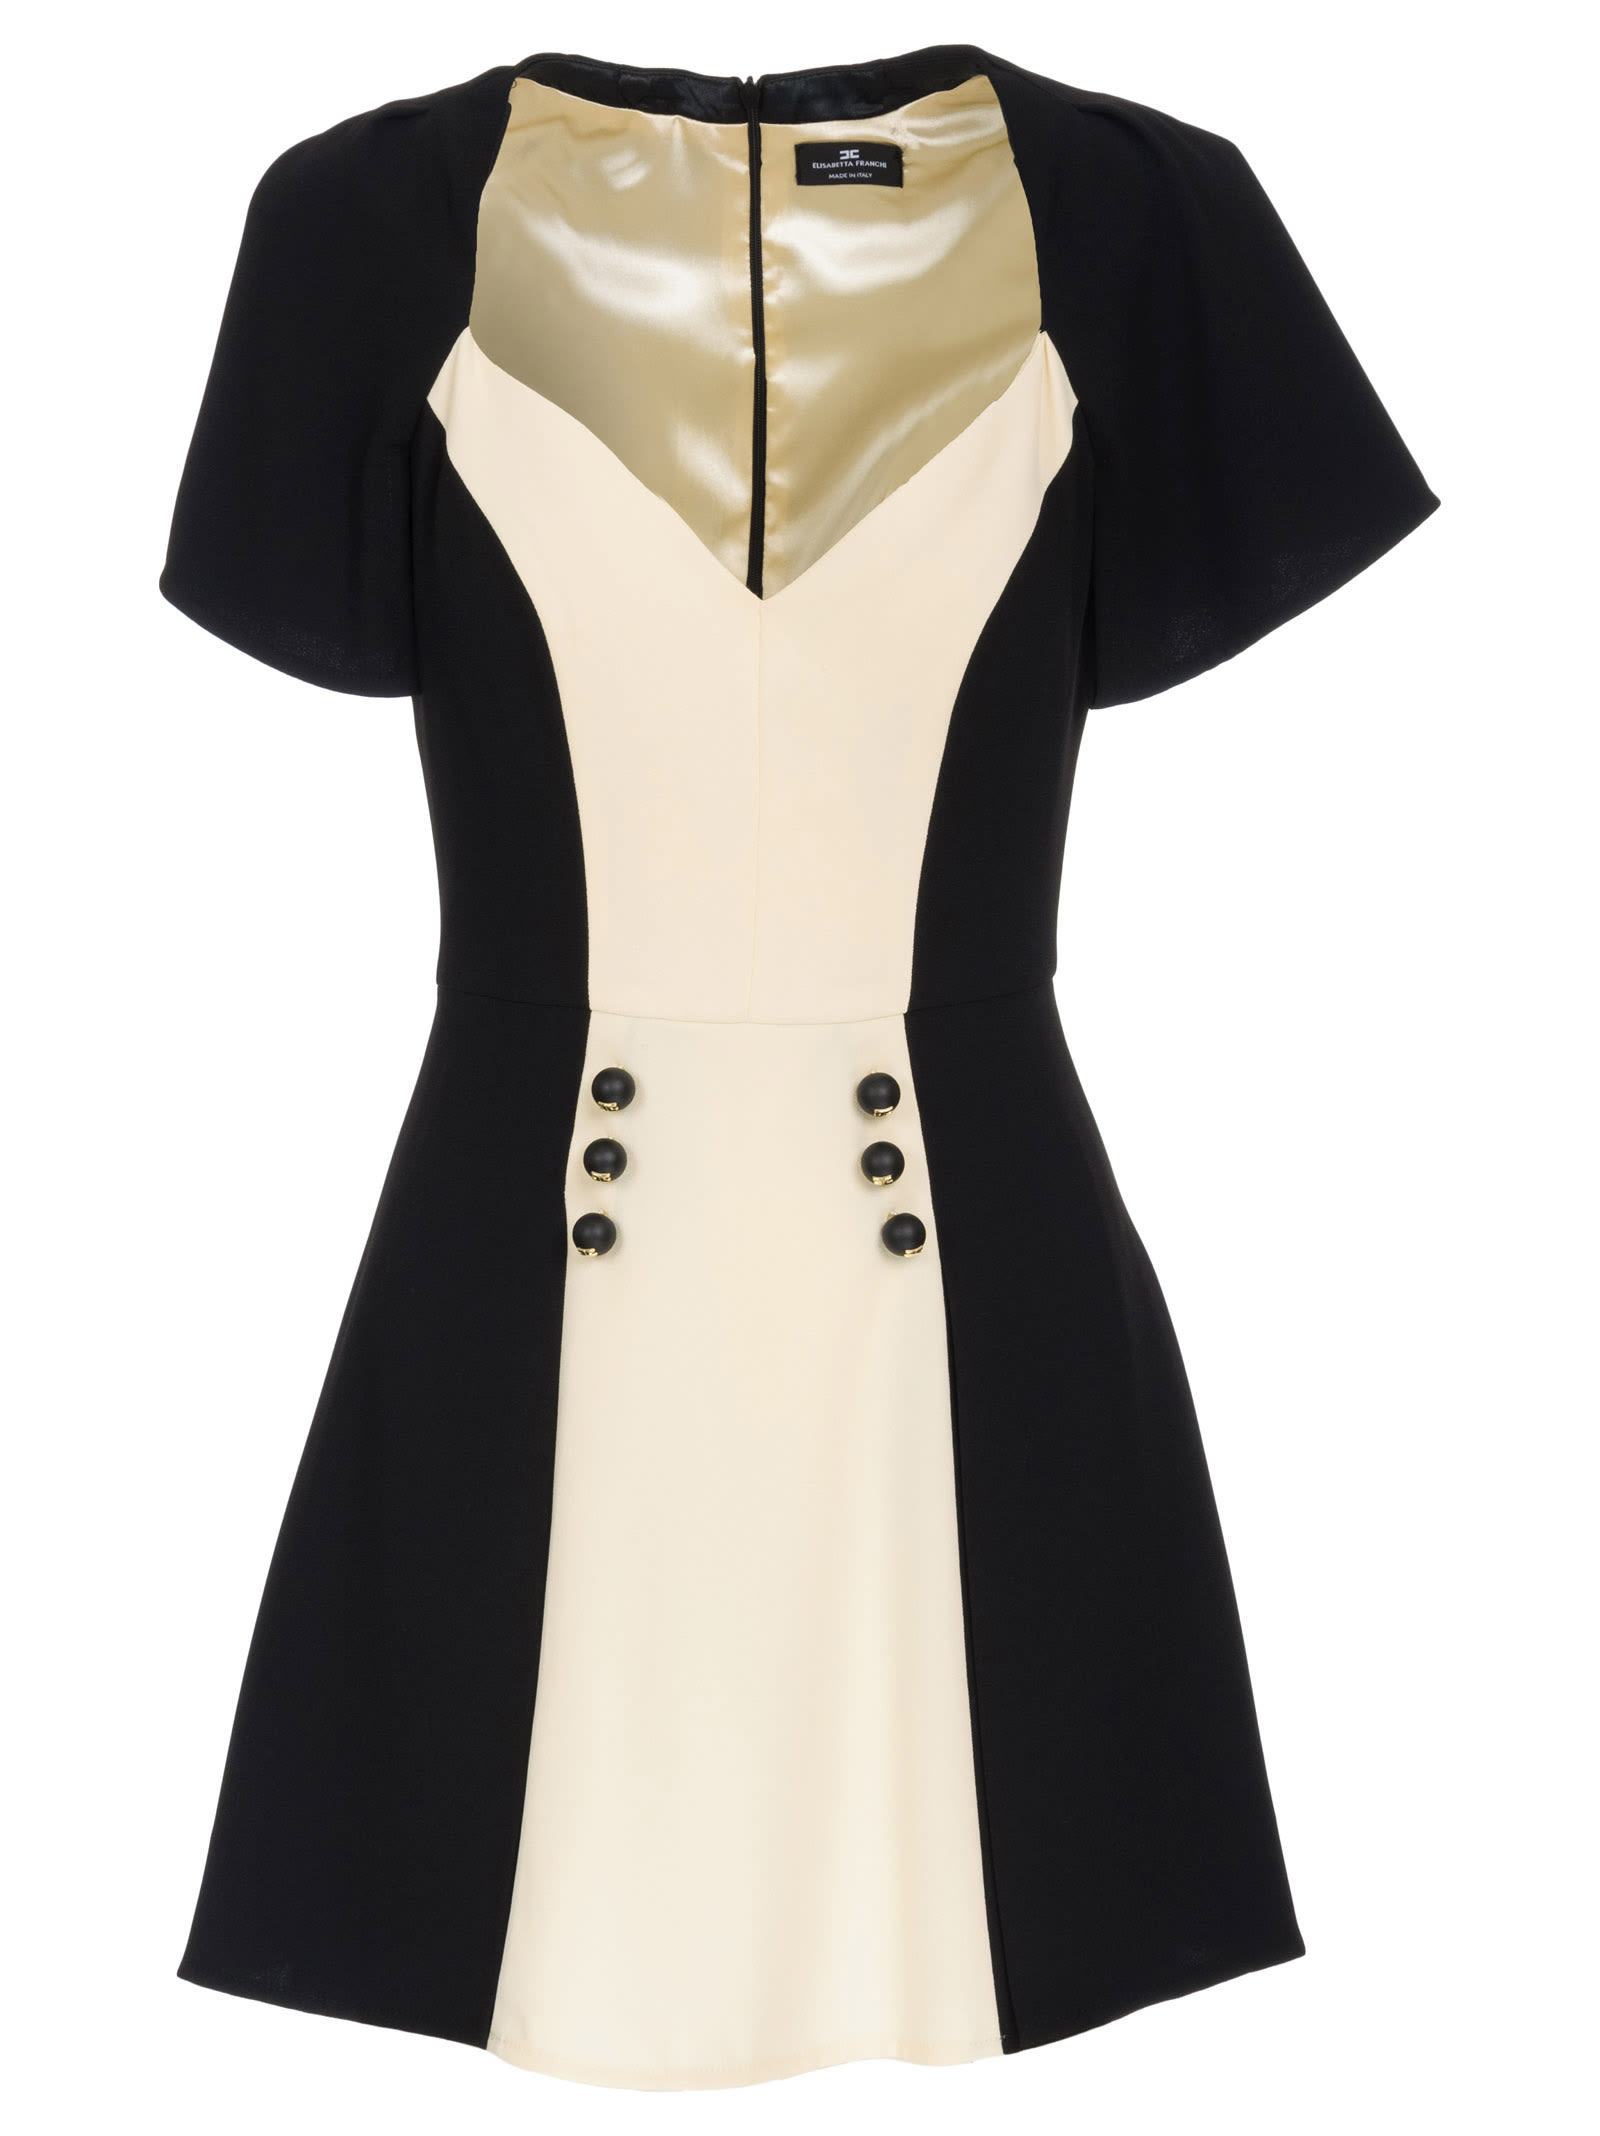 Elisabetta Franchi Bicolored Dress